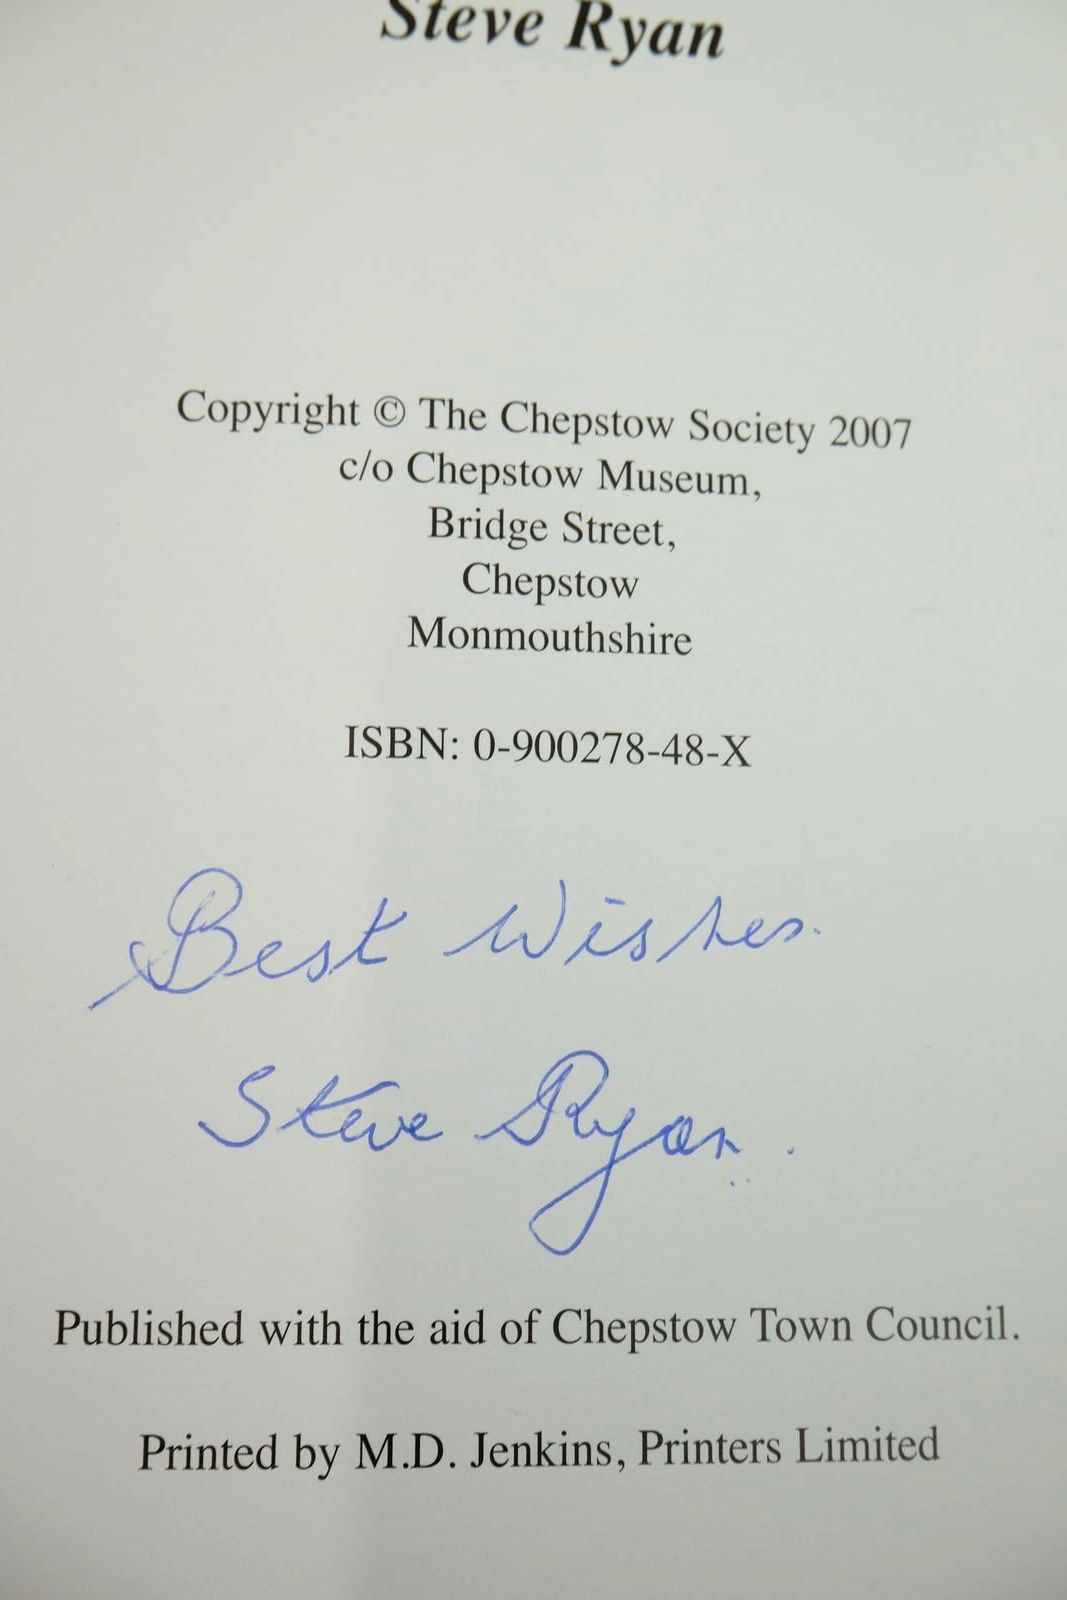 Photo of THOMAS STREET: COURTS AND CHARACTERS written by Ryan, Steve published by The Chepstow Society (STOCK CODE: 2134441)  for sale by Stella & Rose's Books